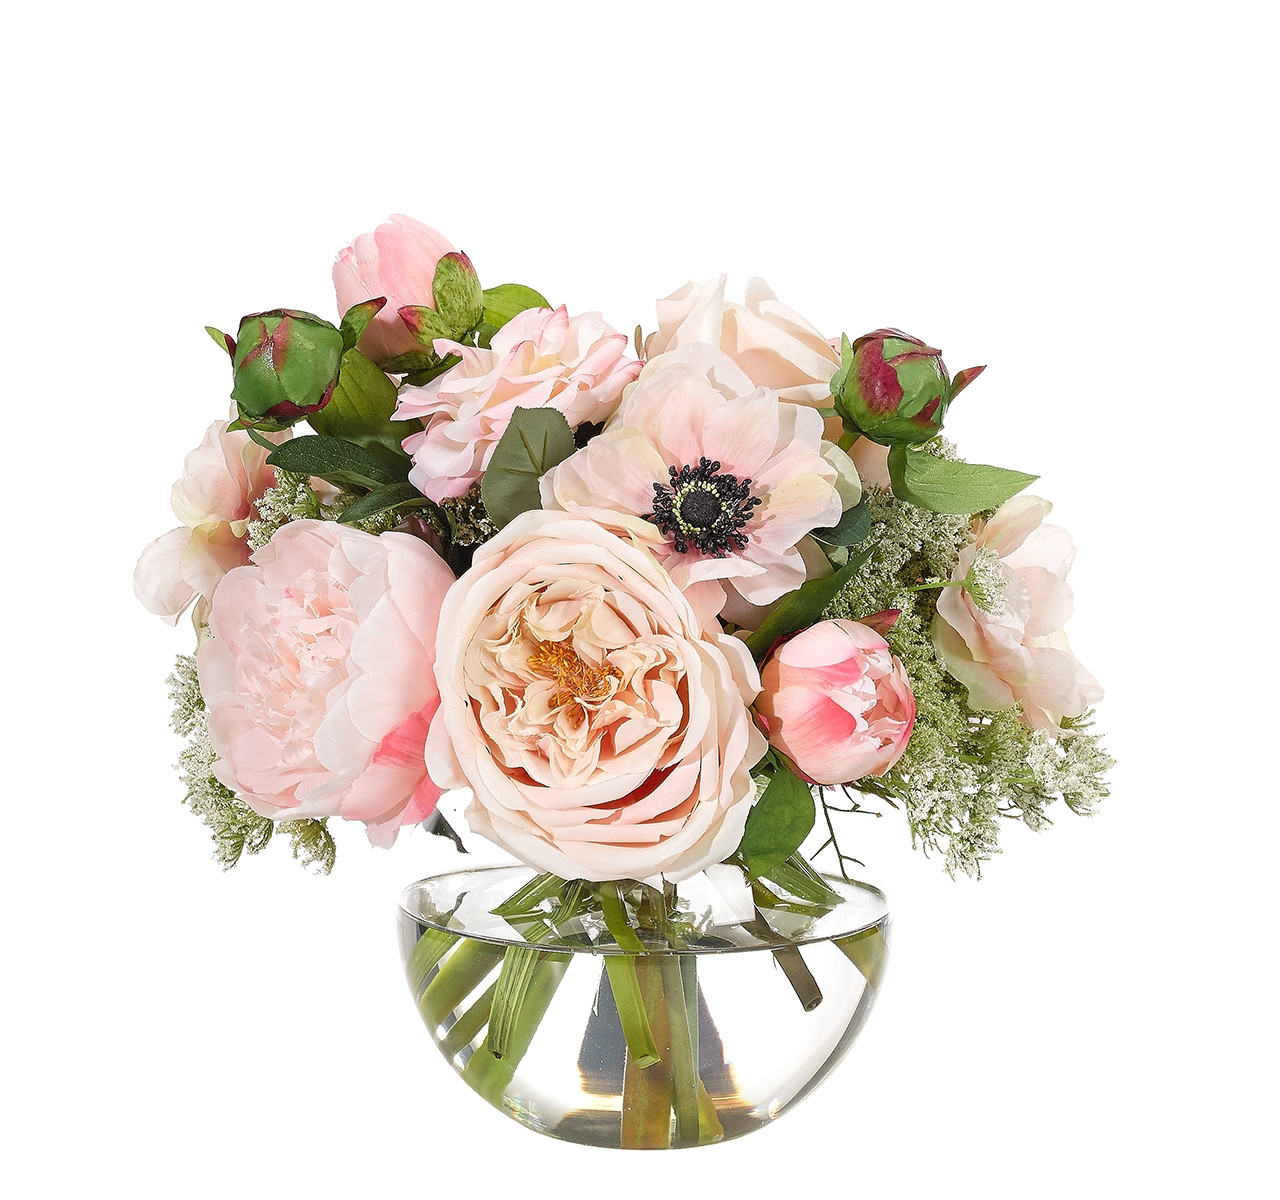 single rose in vase of ndi faux florals and botanicals intended for custom orders